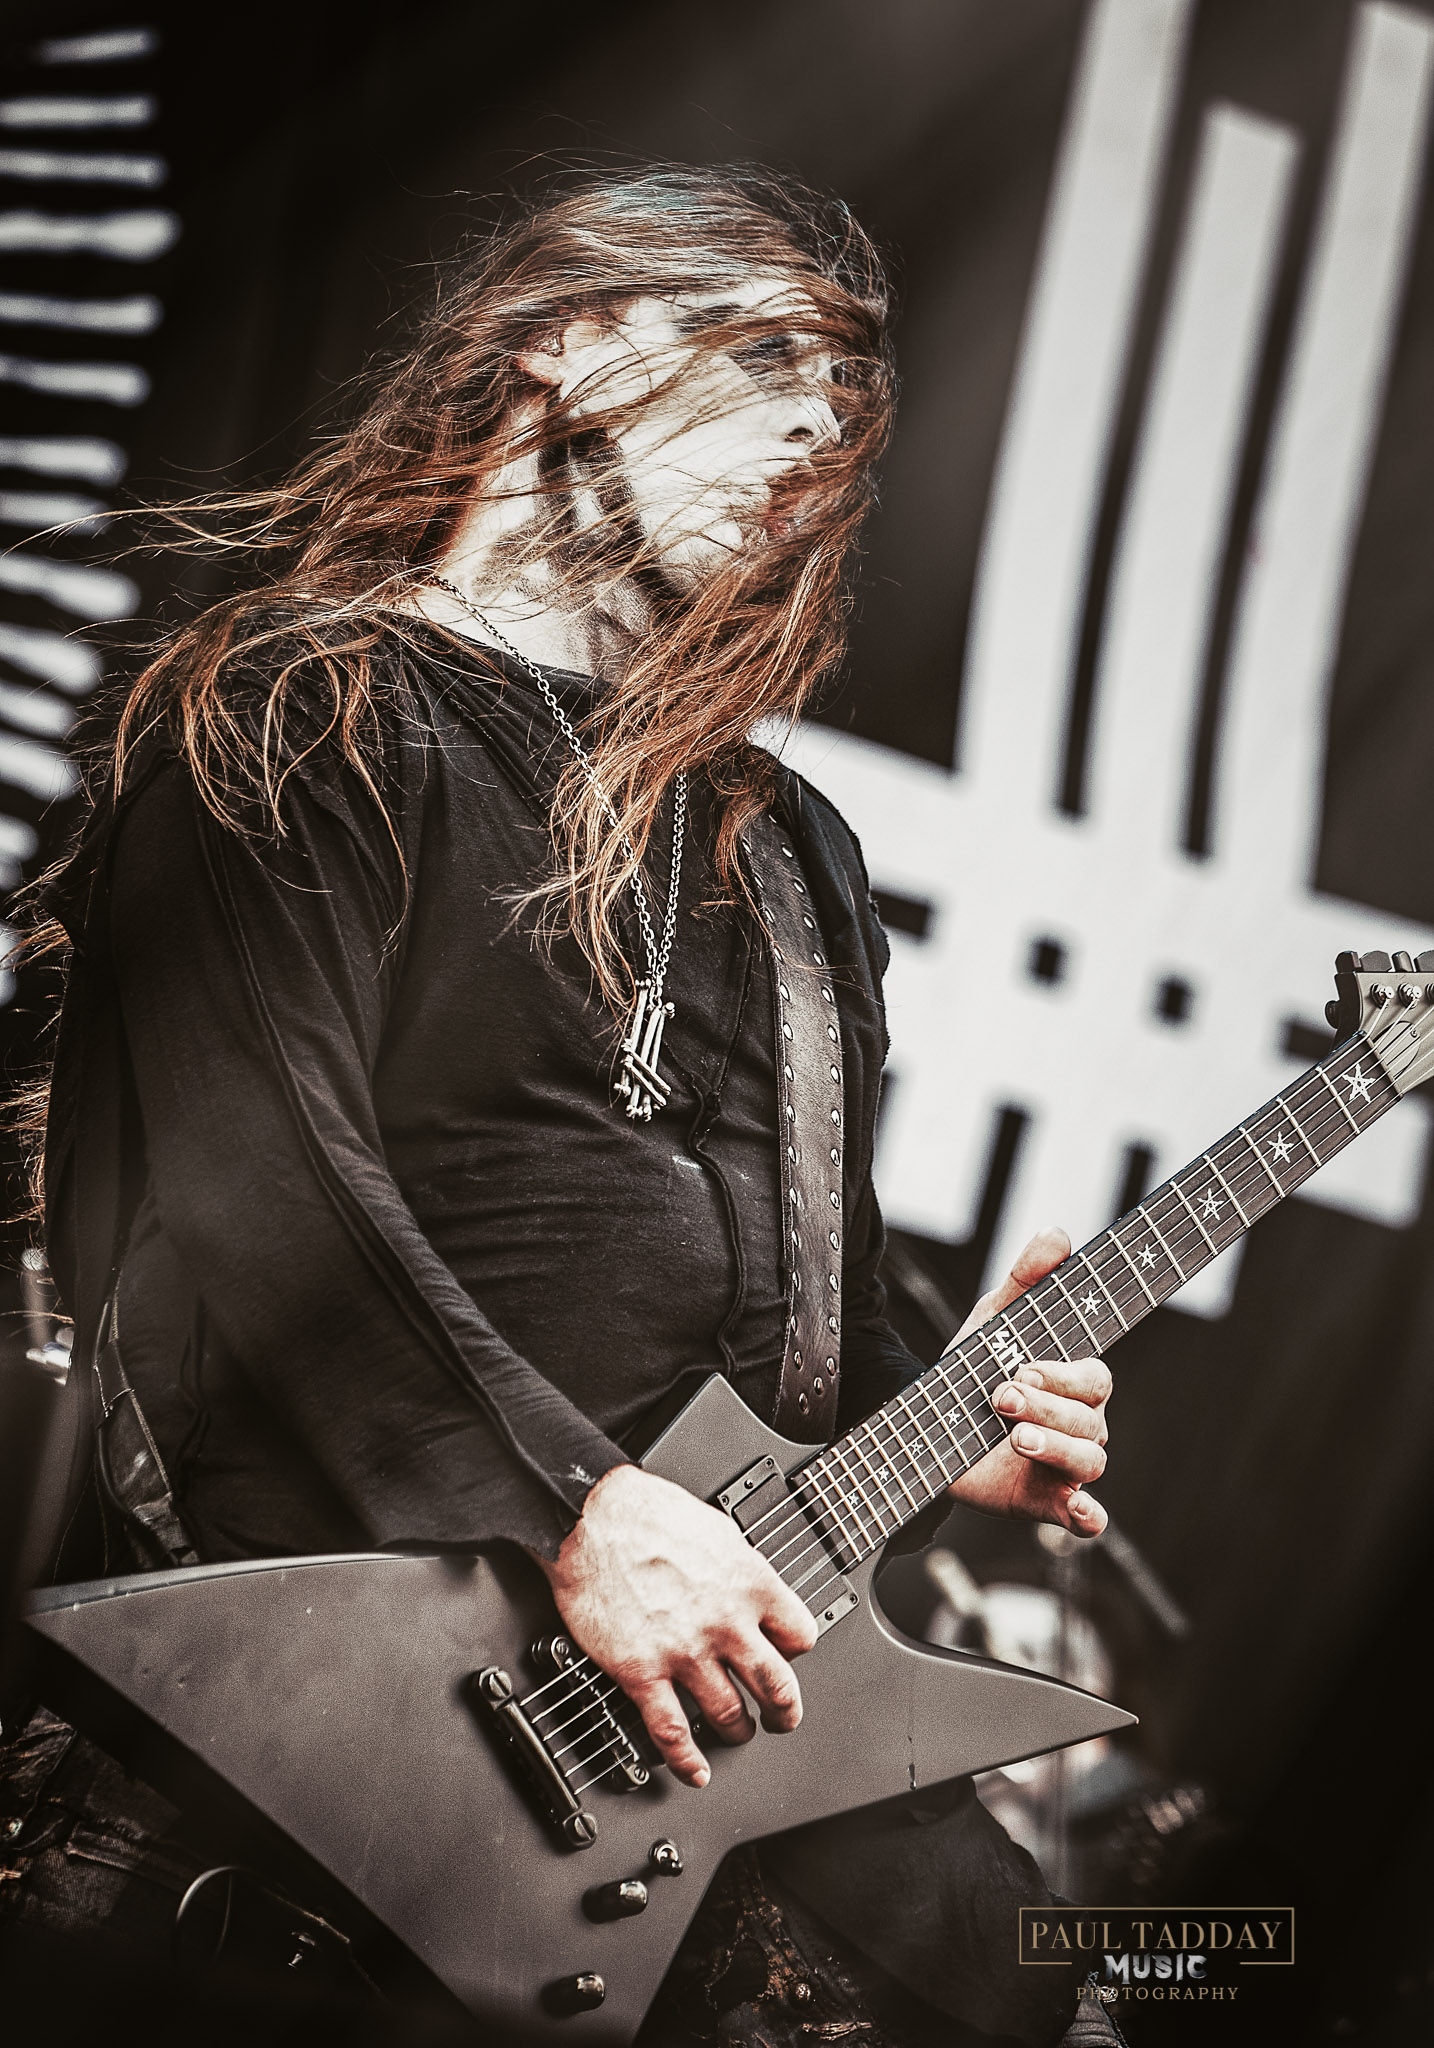 behemoth - download melbourne - march 2019 - web - paul tadday photography - 13.jpg